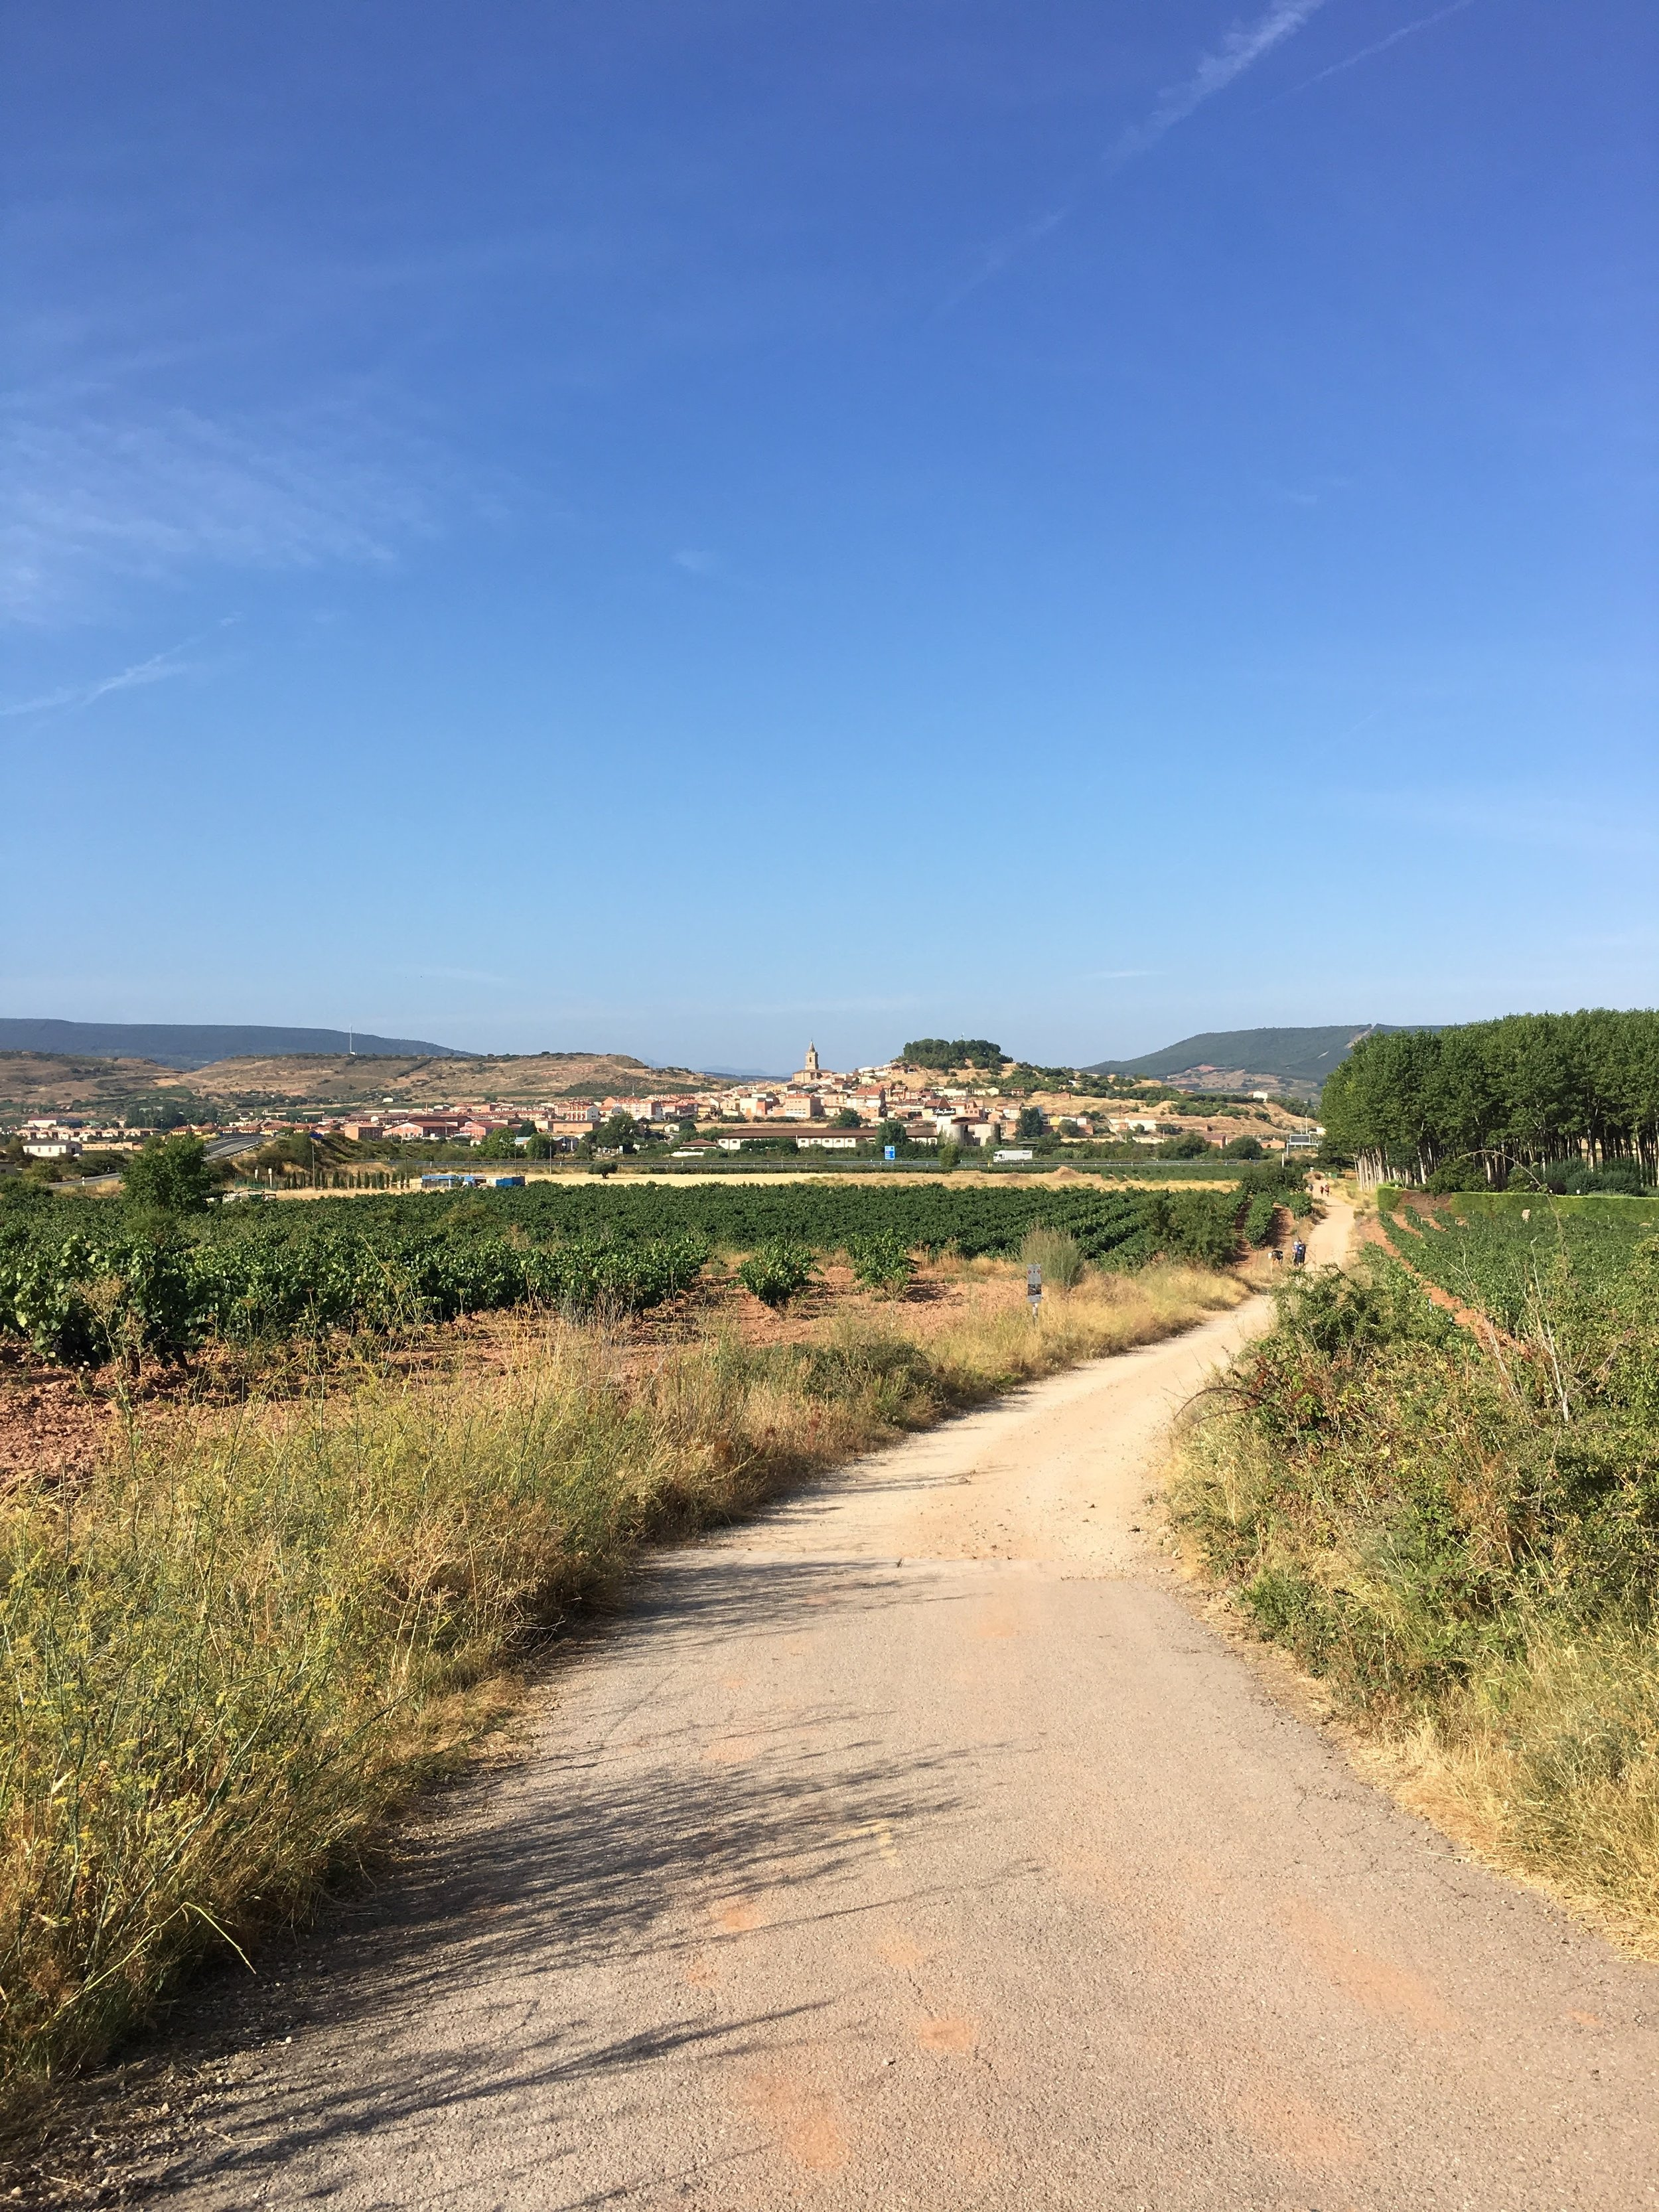 The path leading to Navarrete, Spain - September 2016